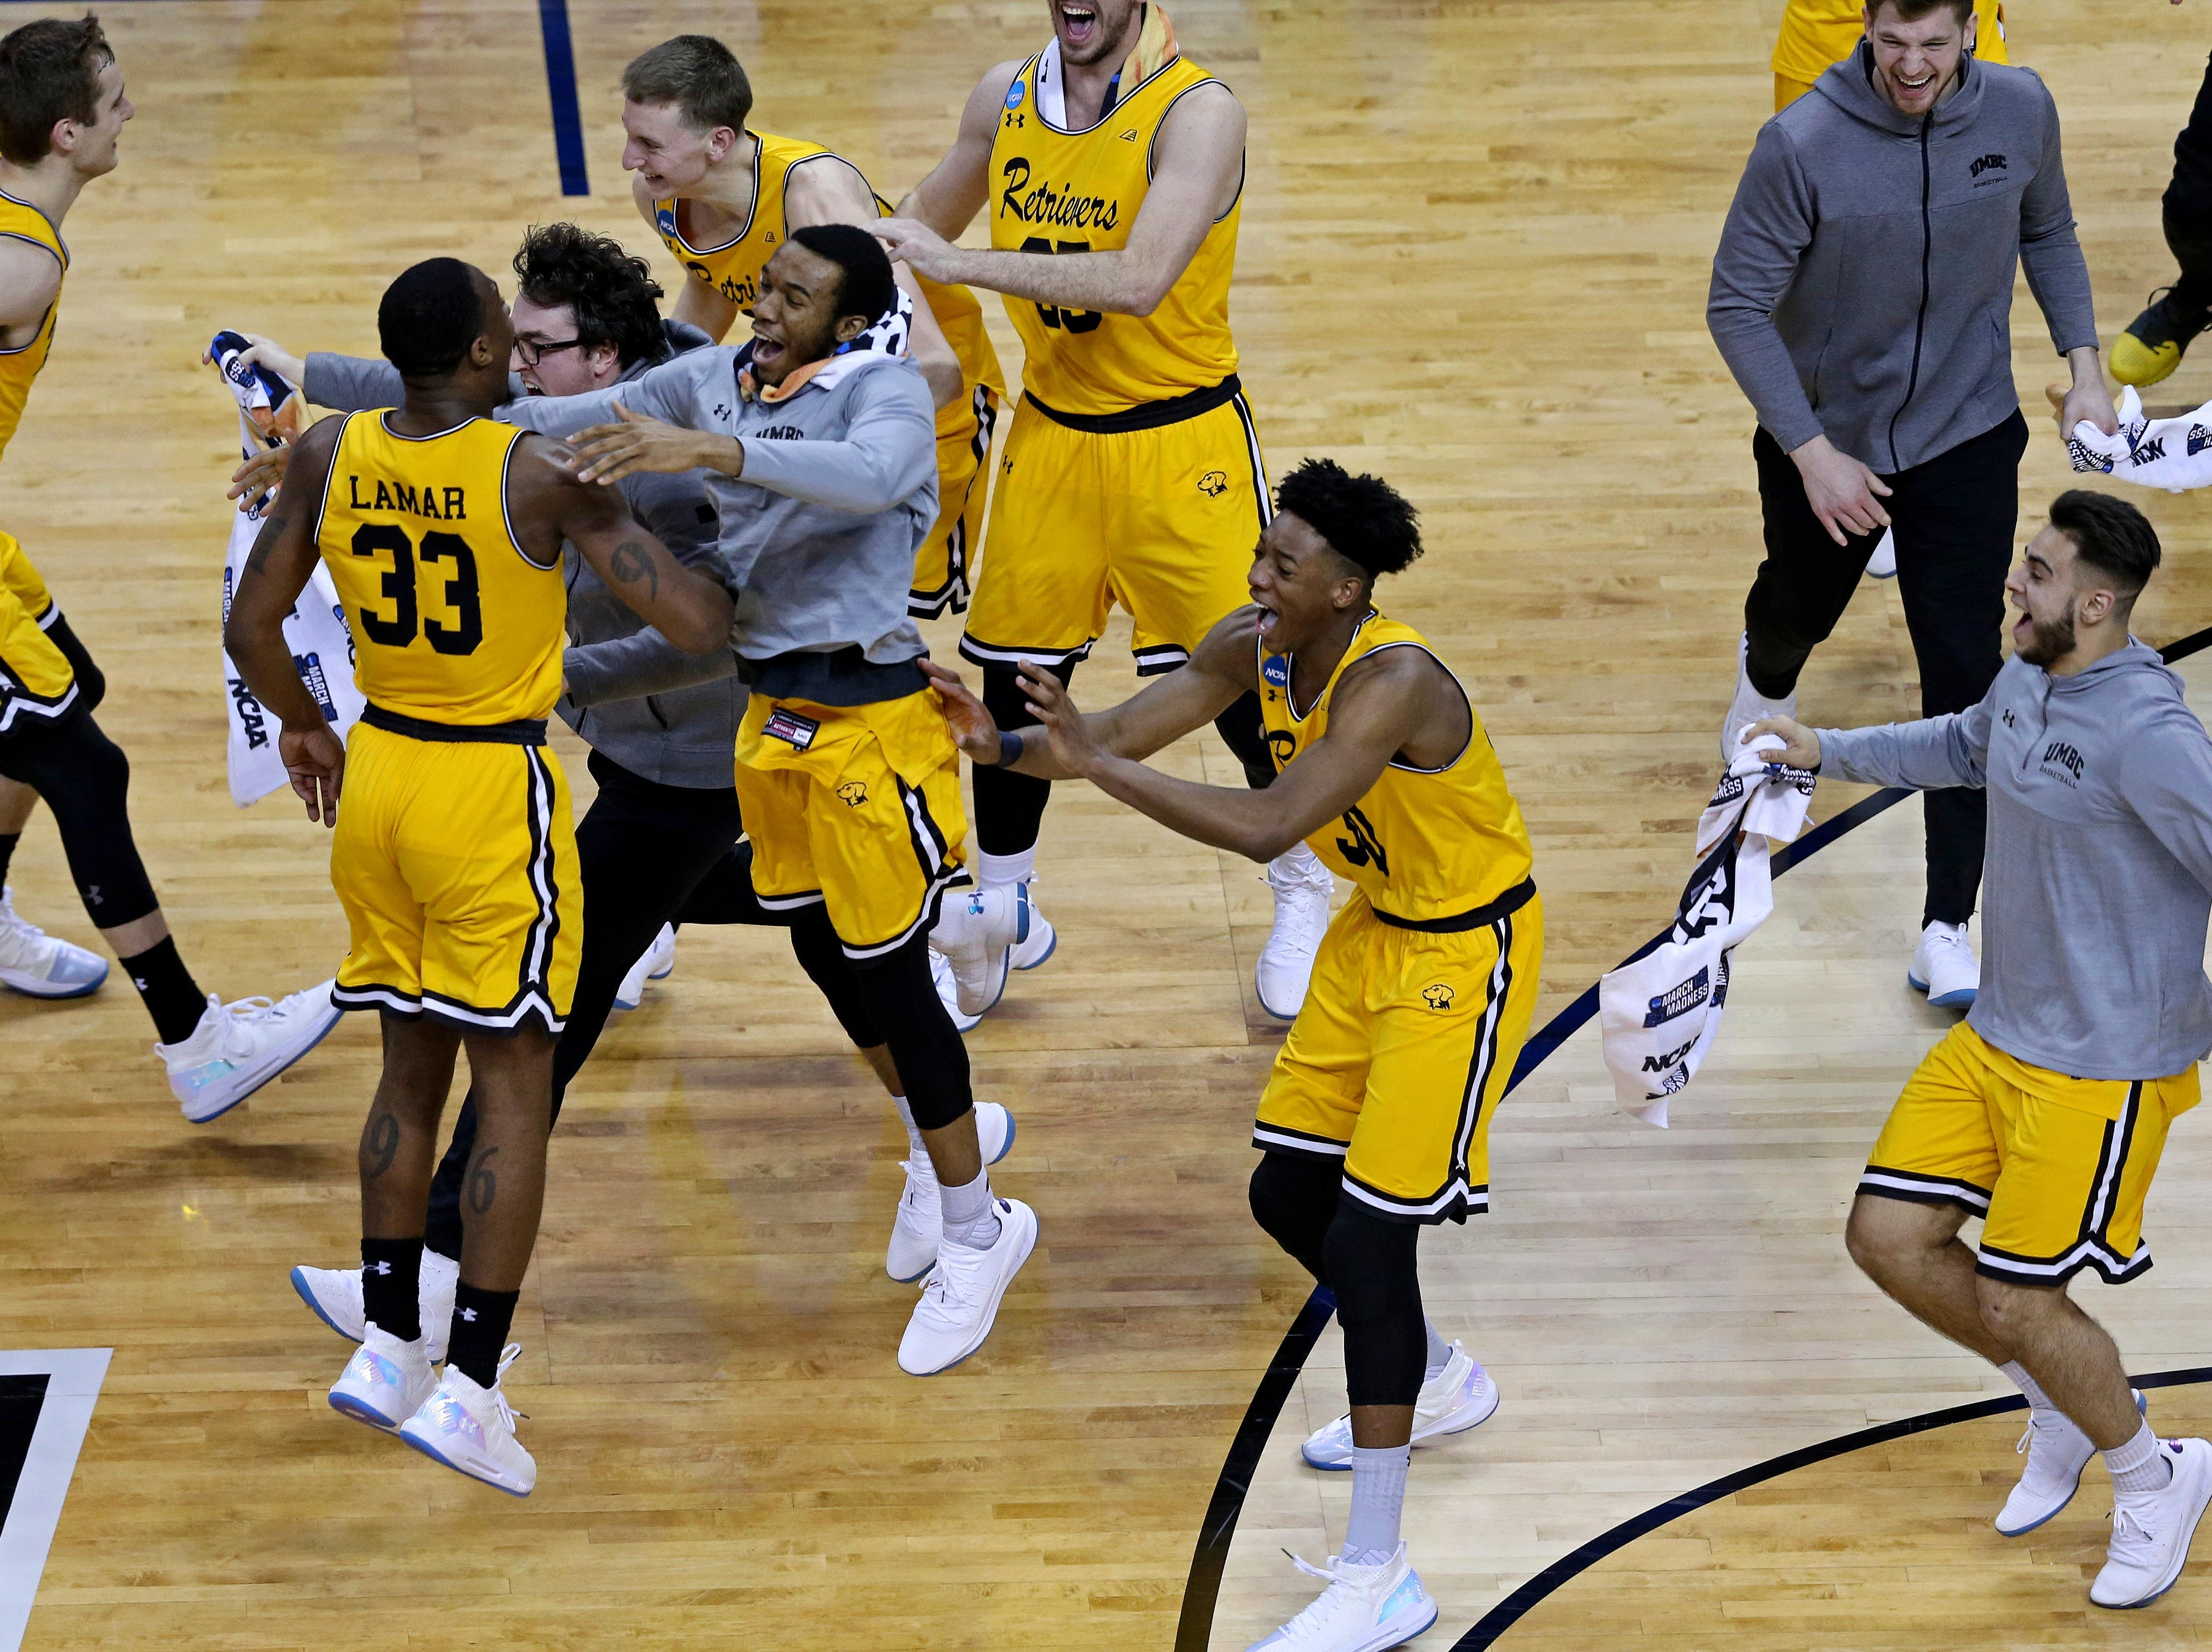 March 16, 2018: Players from the University of Maryland - Baltimore County celebrate after defeating the Virginia Cavaliers in the first round of the 2018 NCAA Tournament. In a history making stunner, No. 16 seed Maryland Baltimore County upsets No. 1 seed UVA in the first round of the NCAA tournament.